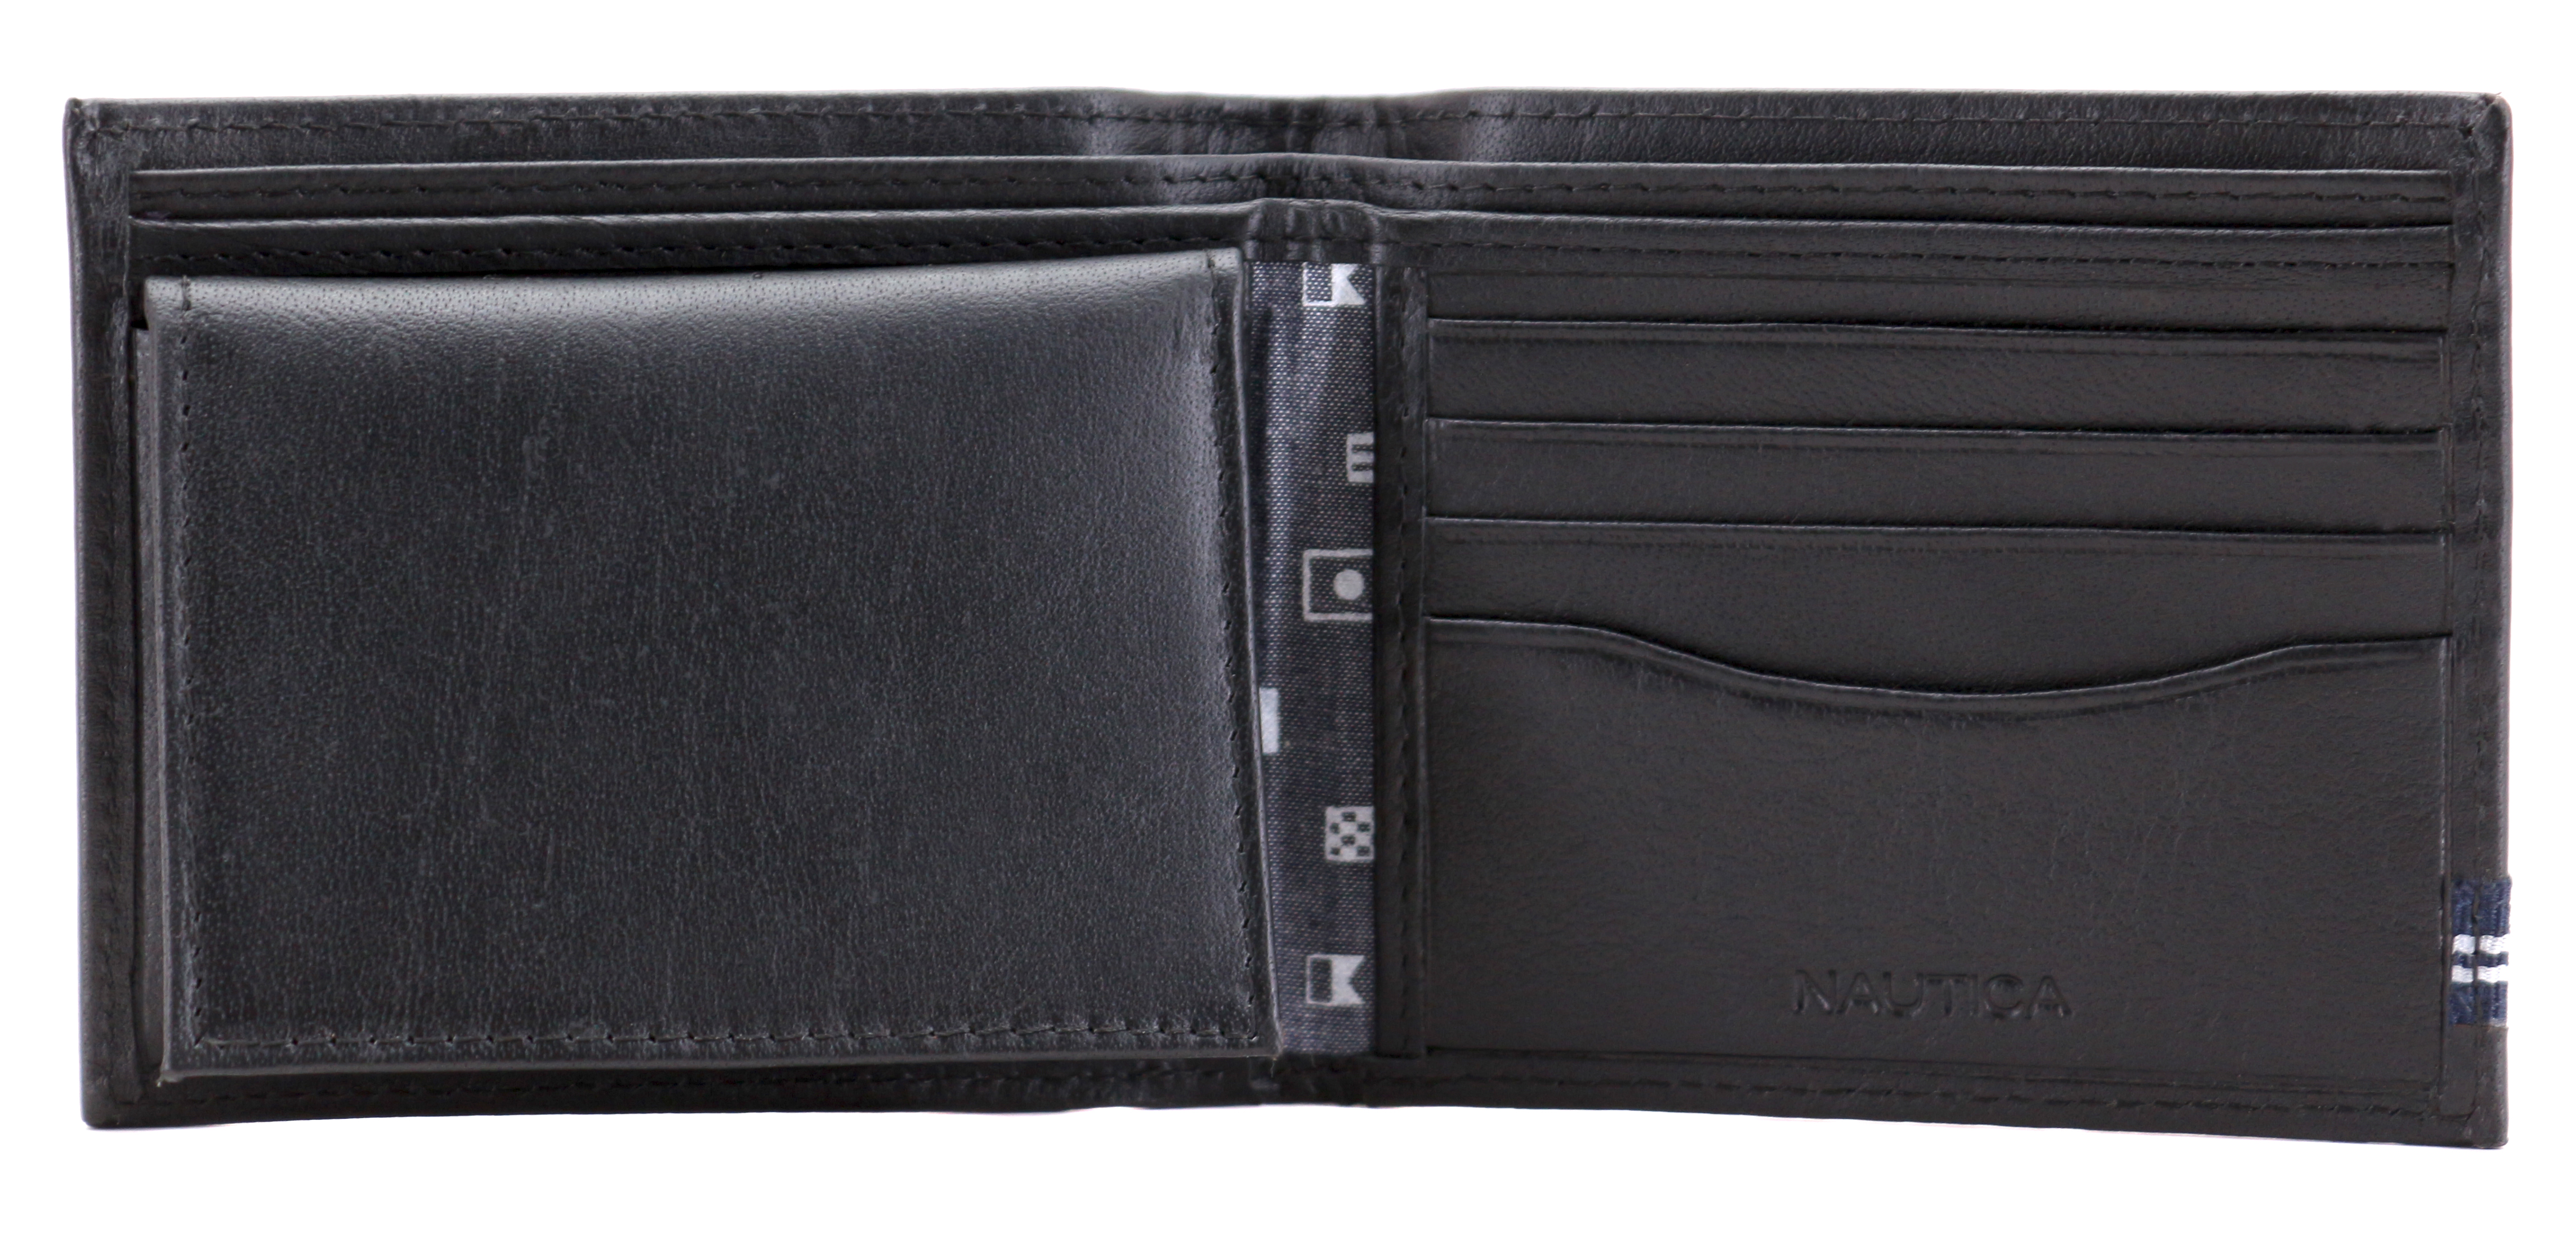 Nautica-Men-039-s-Genuine-Leather-Credit-Card-ID-Double-Billfold-Passcase-Wallet thumbnail 6